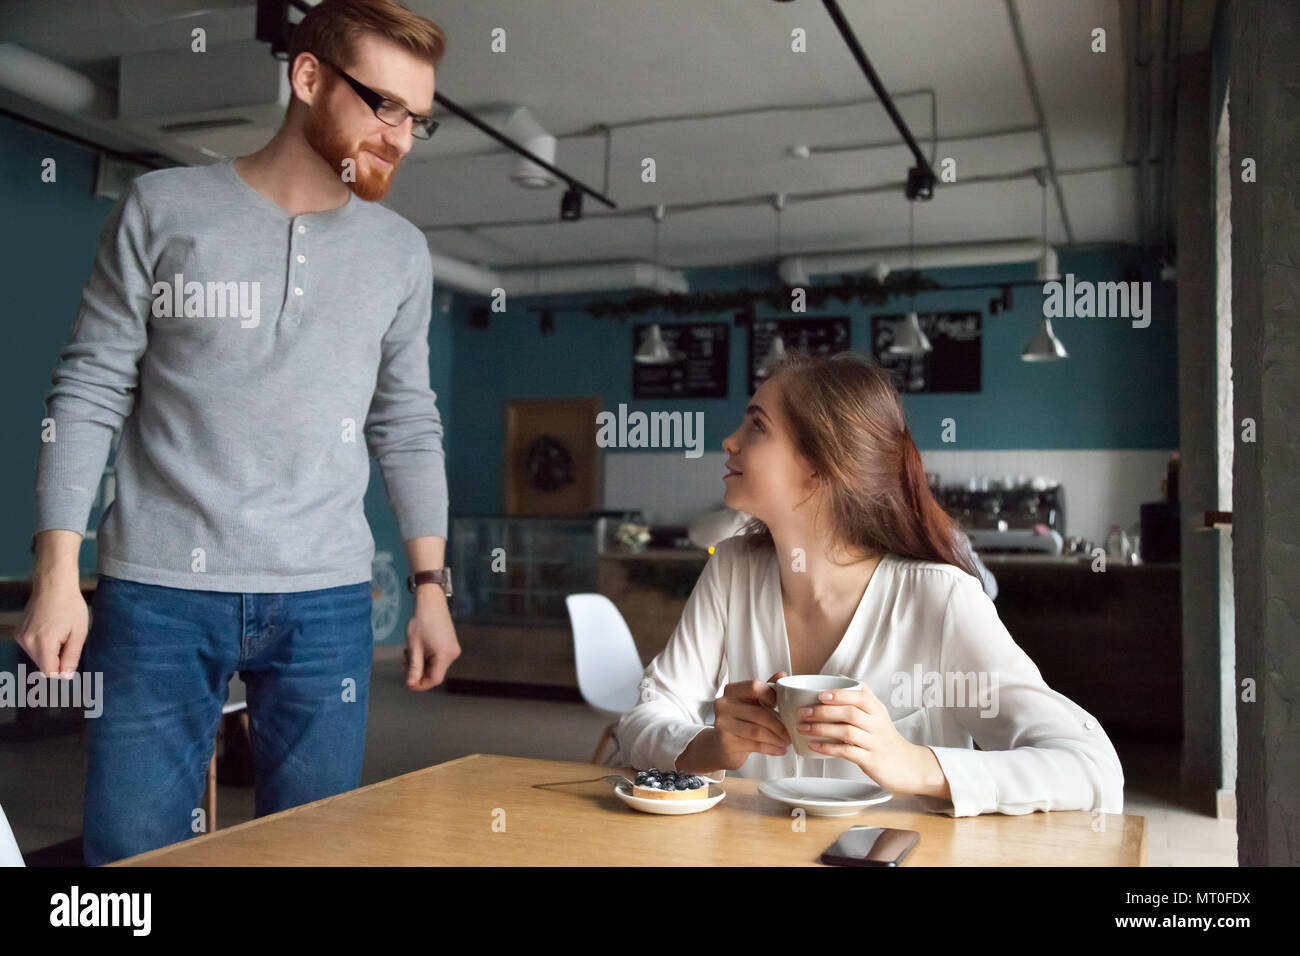 Man coming to cafe table getting acquainted with beautiful woman - Stock Image